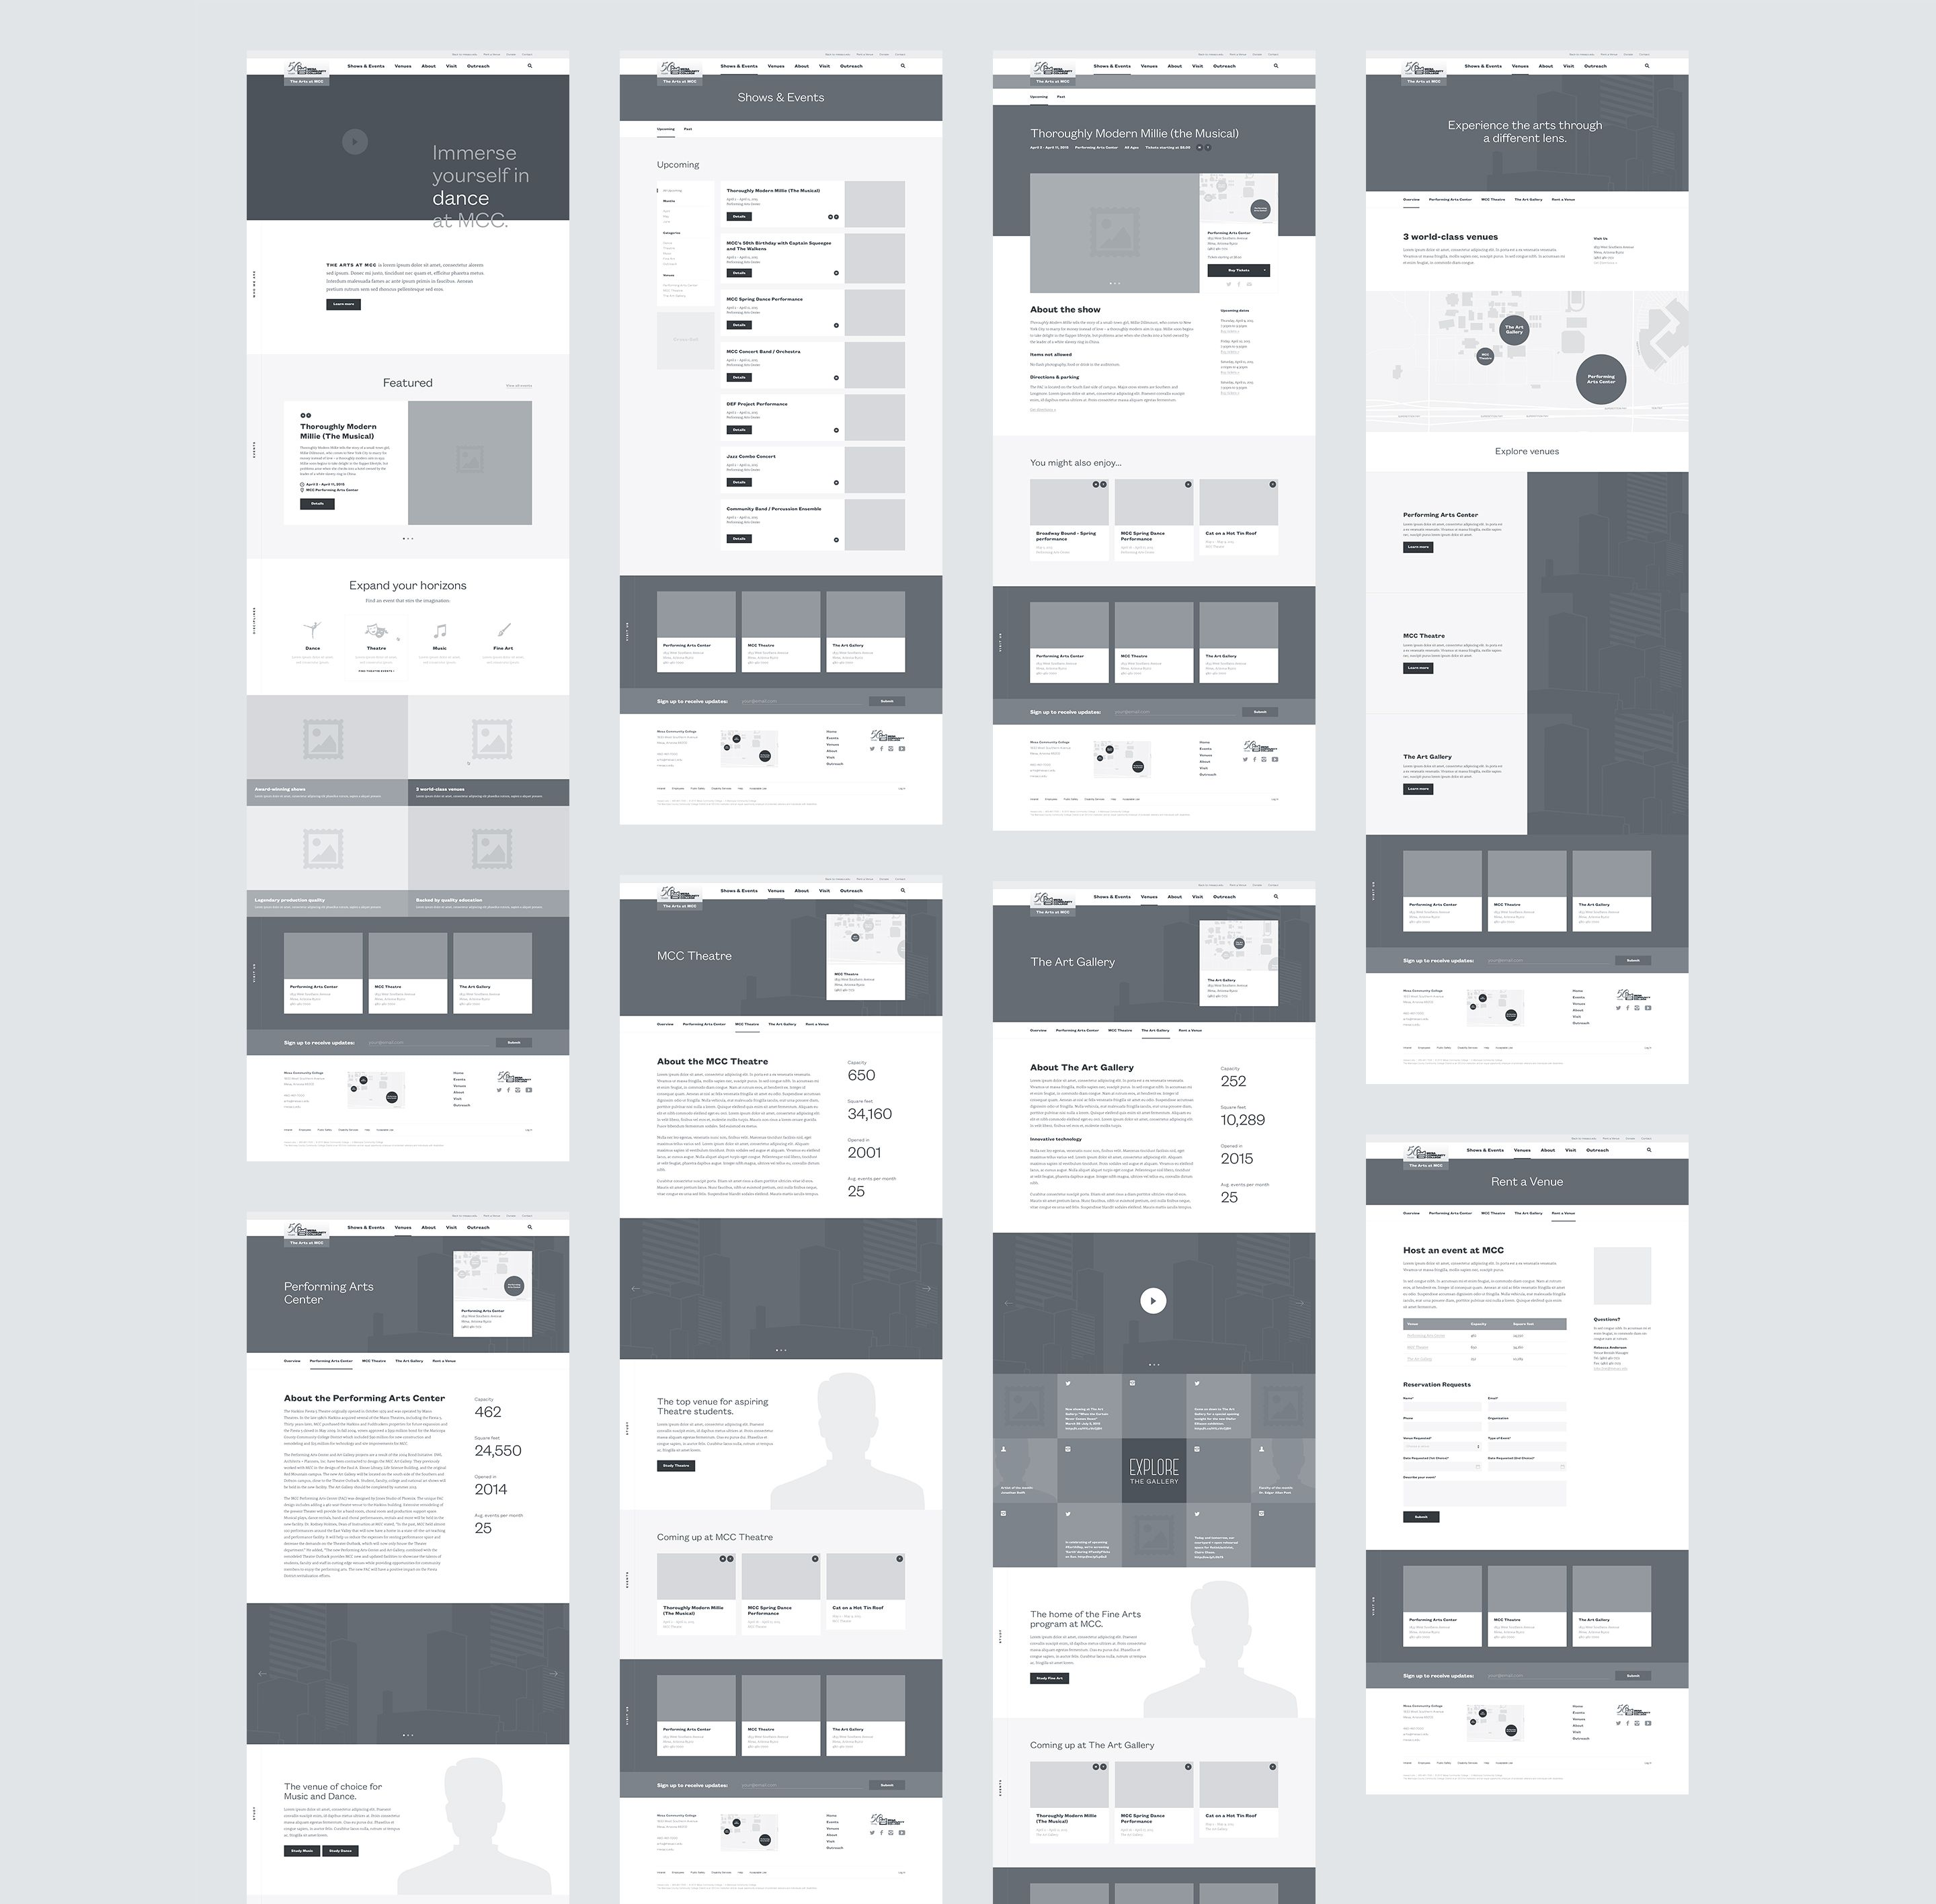 Wireframe: Pin By Doc Holladay On UX Design